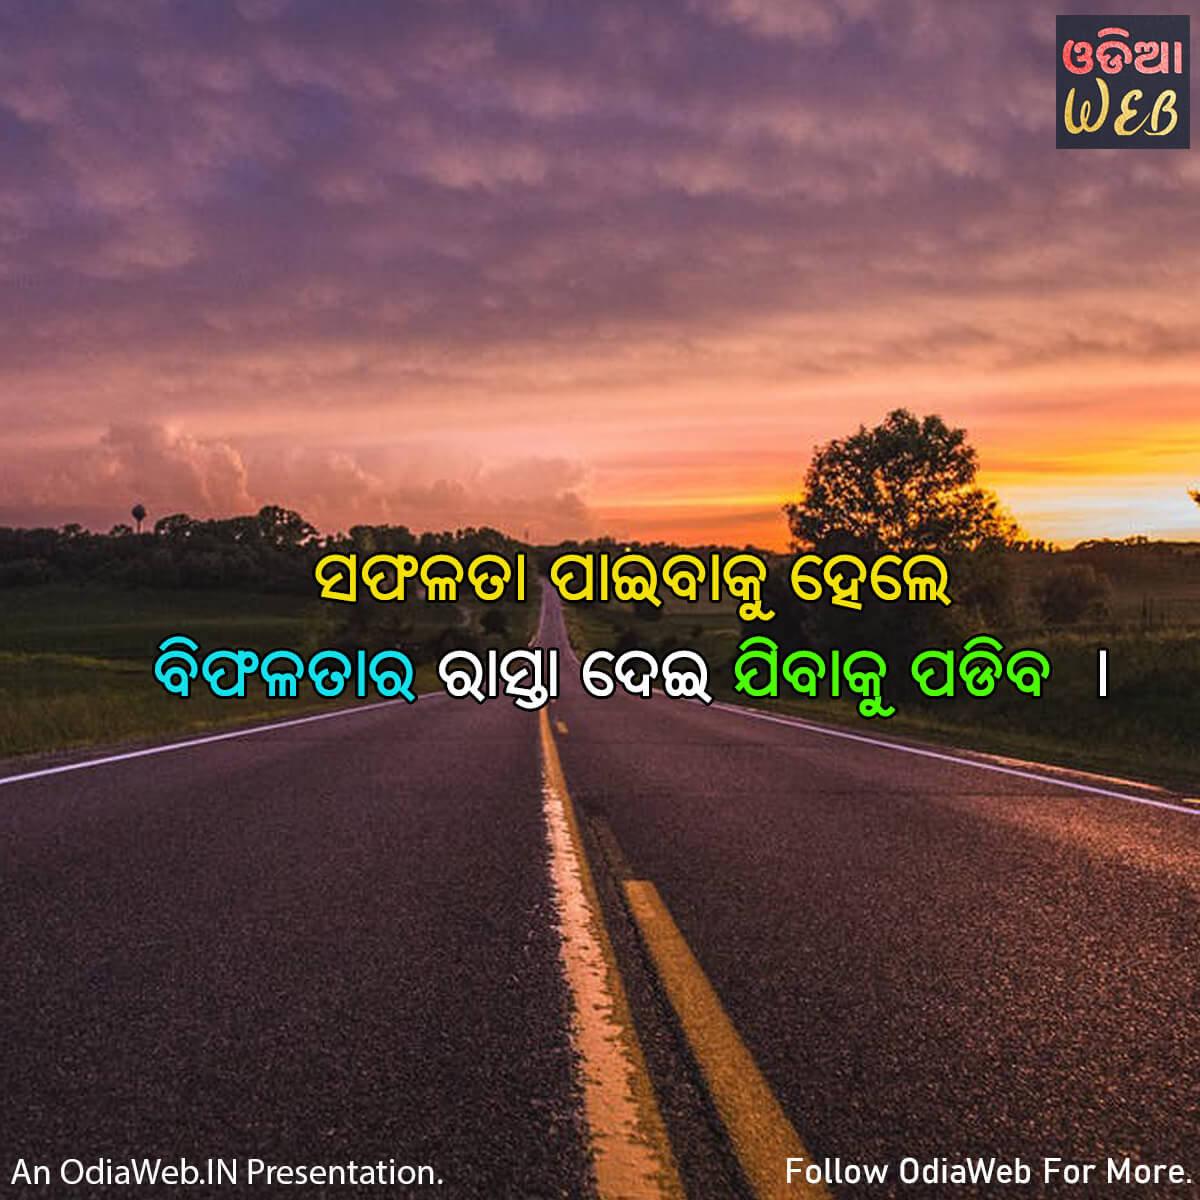 Odia Motivational Quotes8